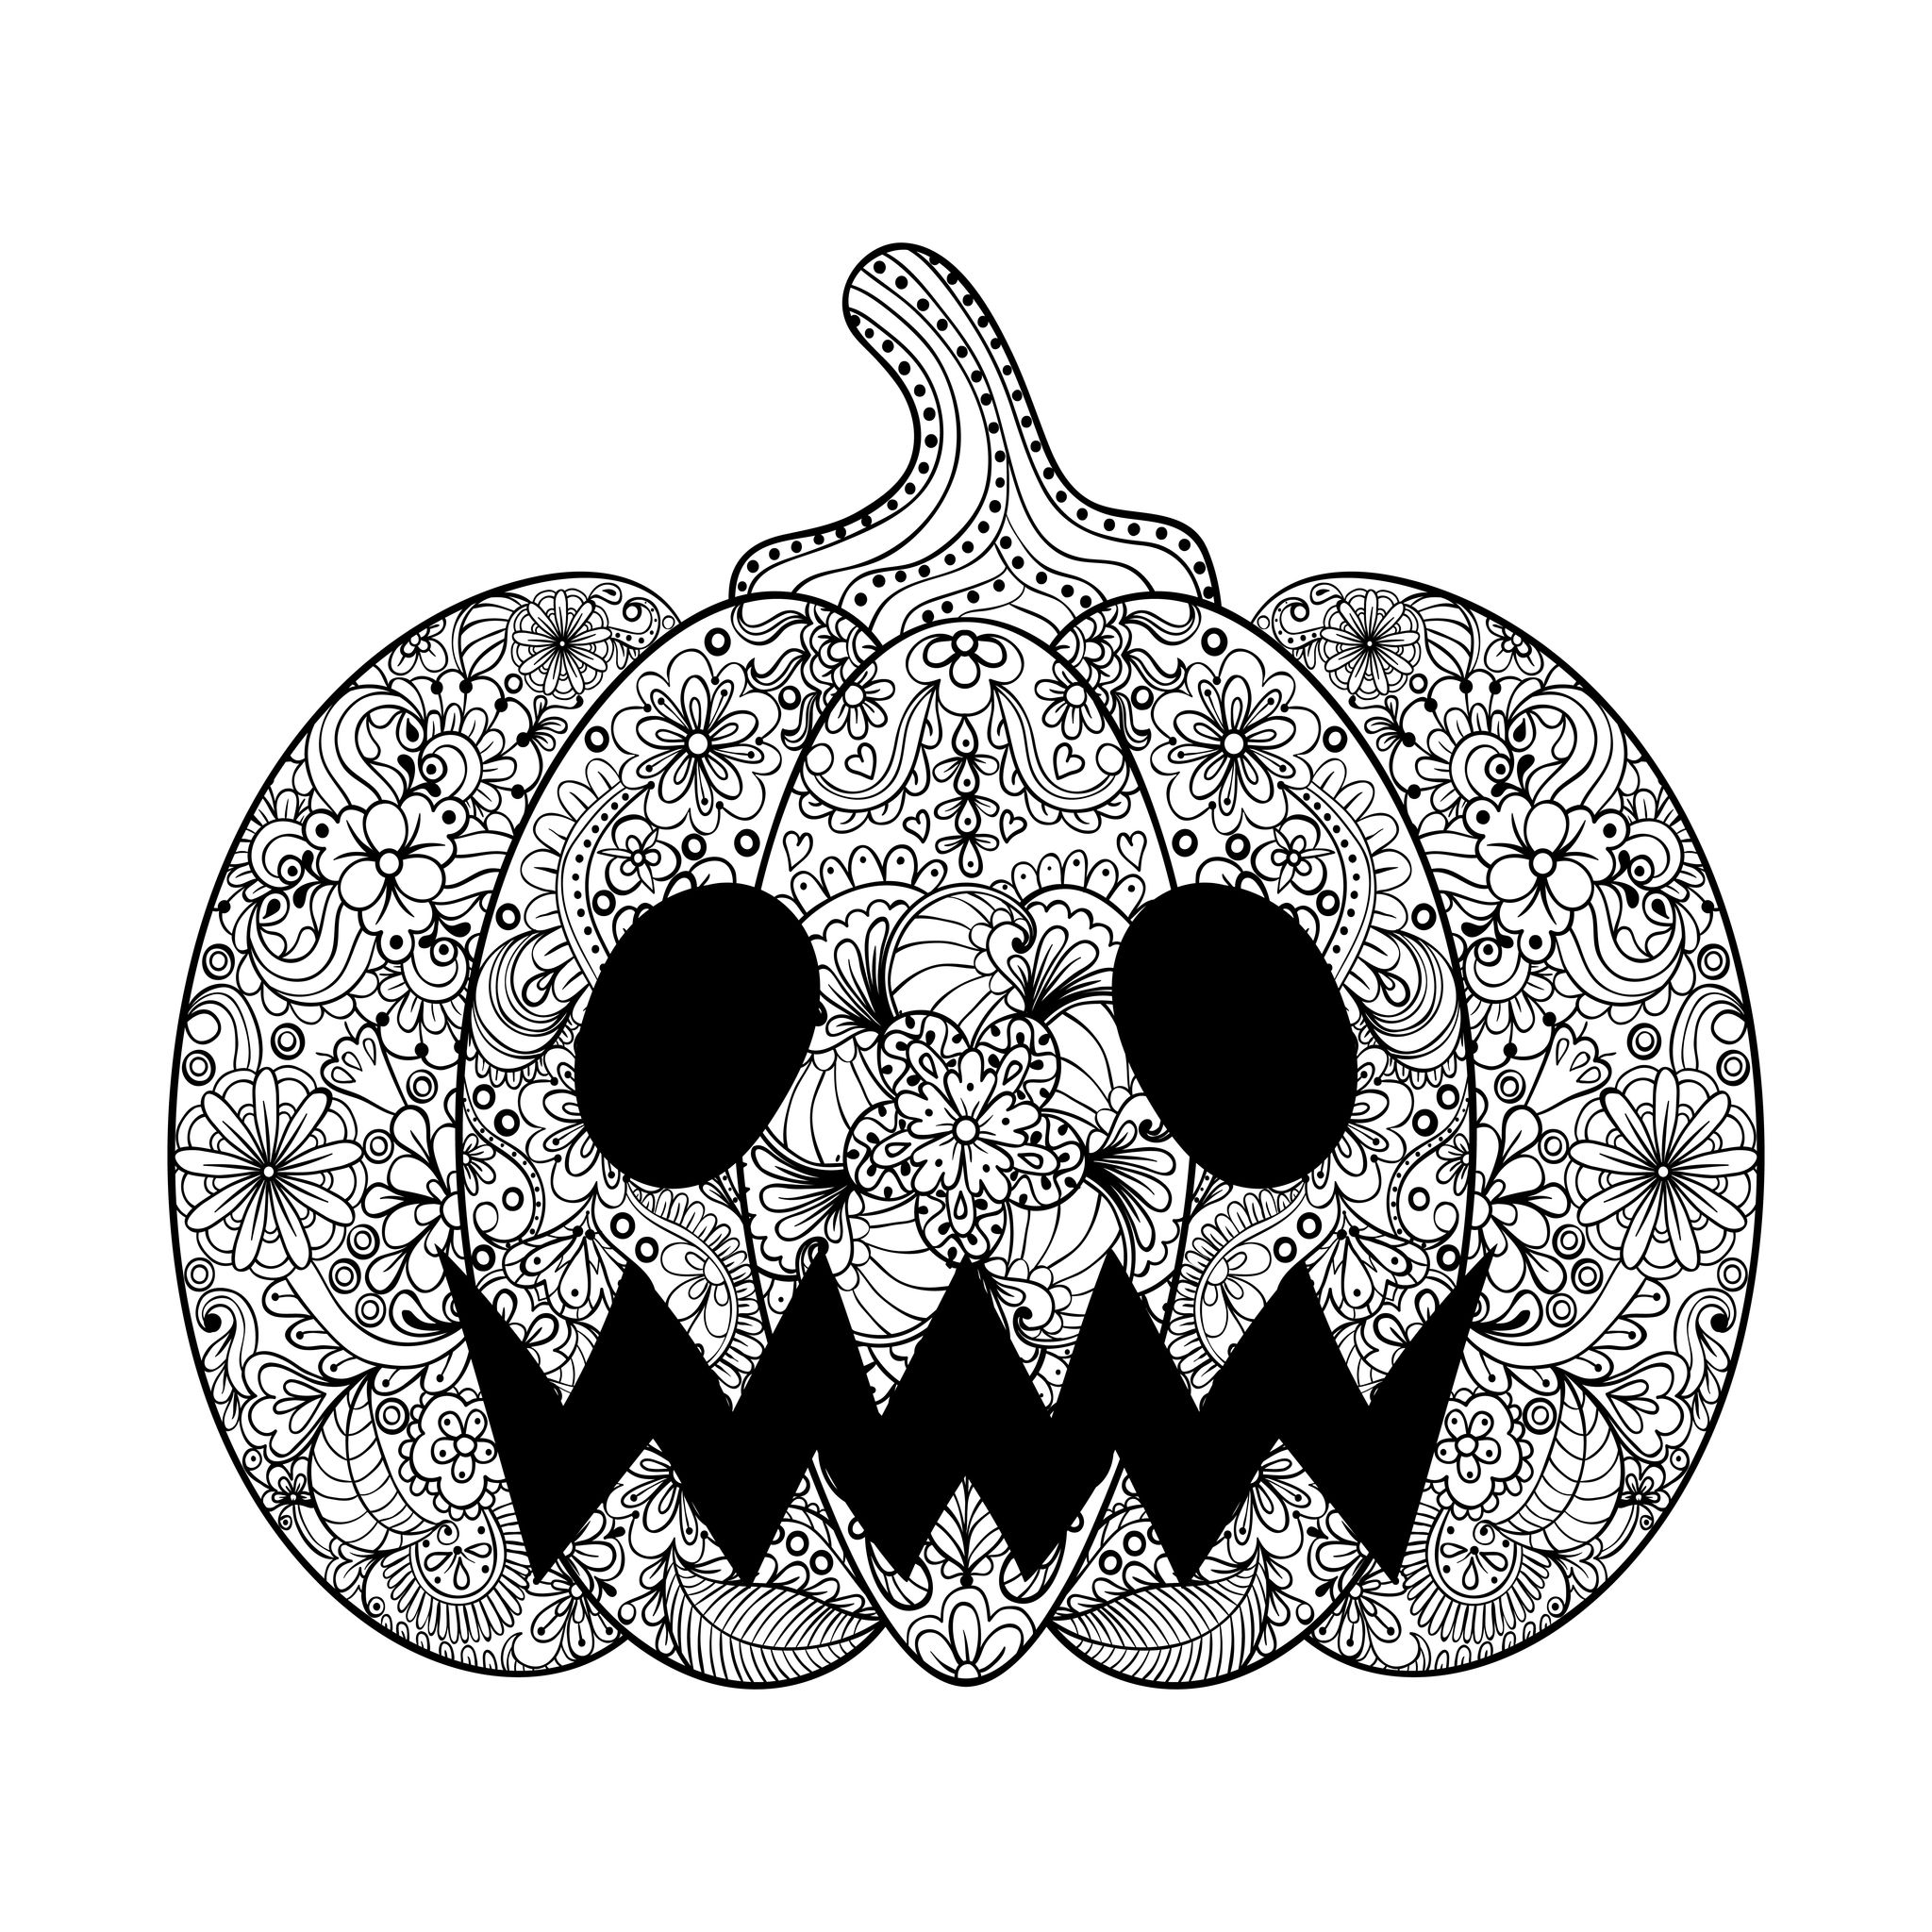 halloween coloring pages pumpkin halloween pumpkin coloring pages for kids dora123com coloring pumpkin pages halloween